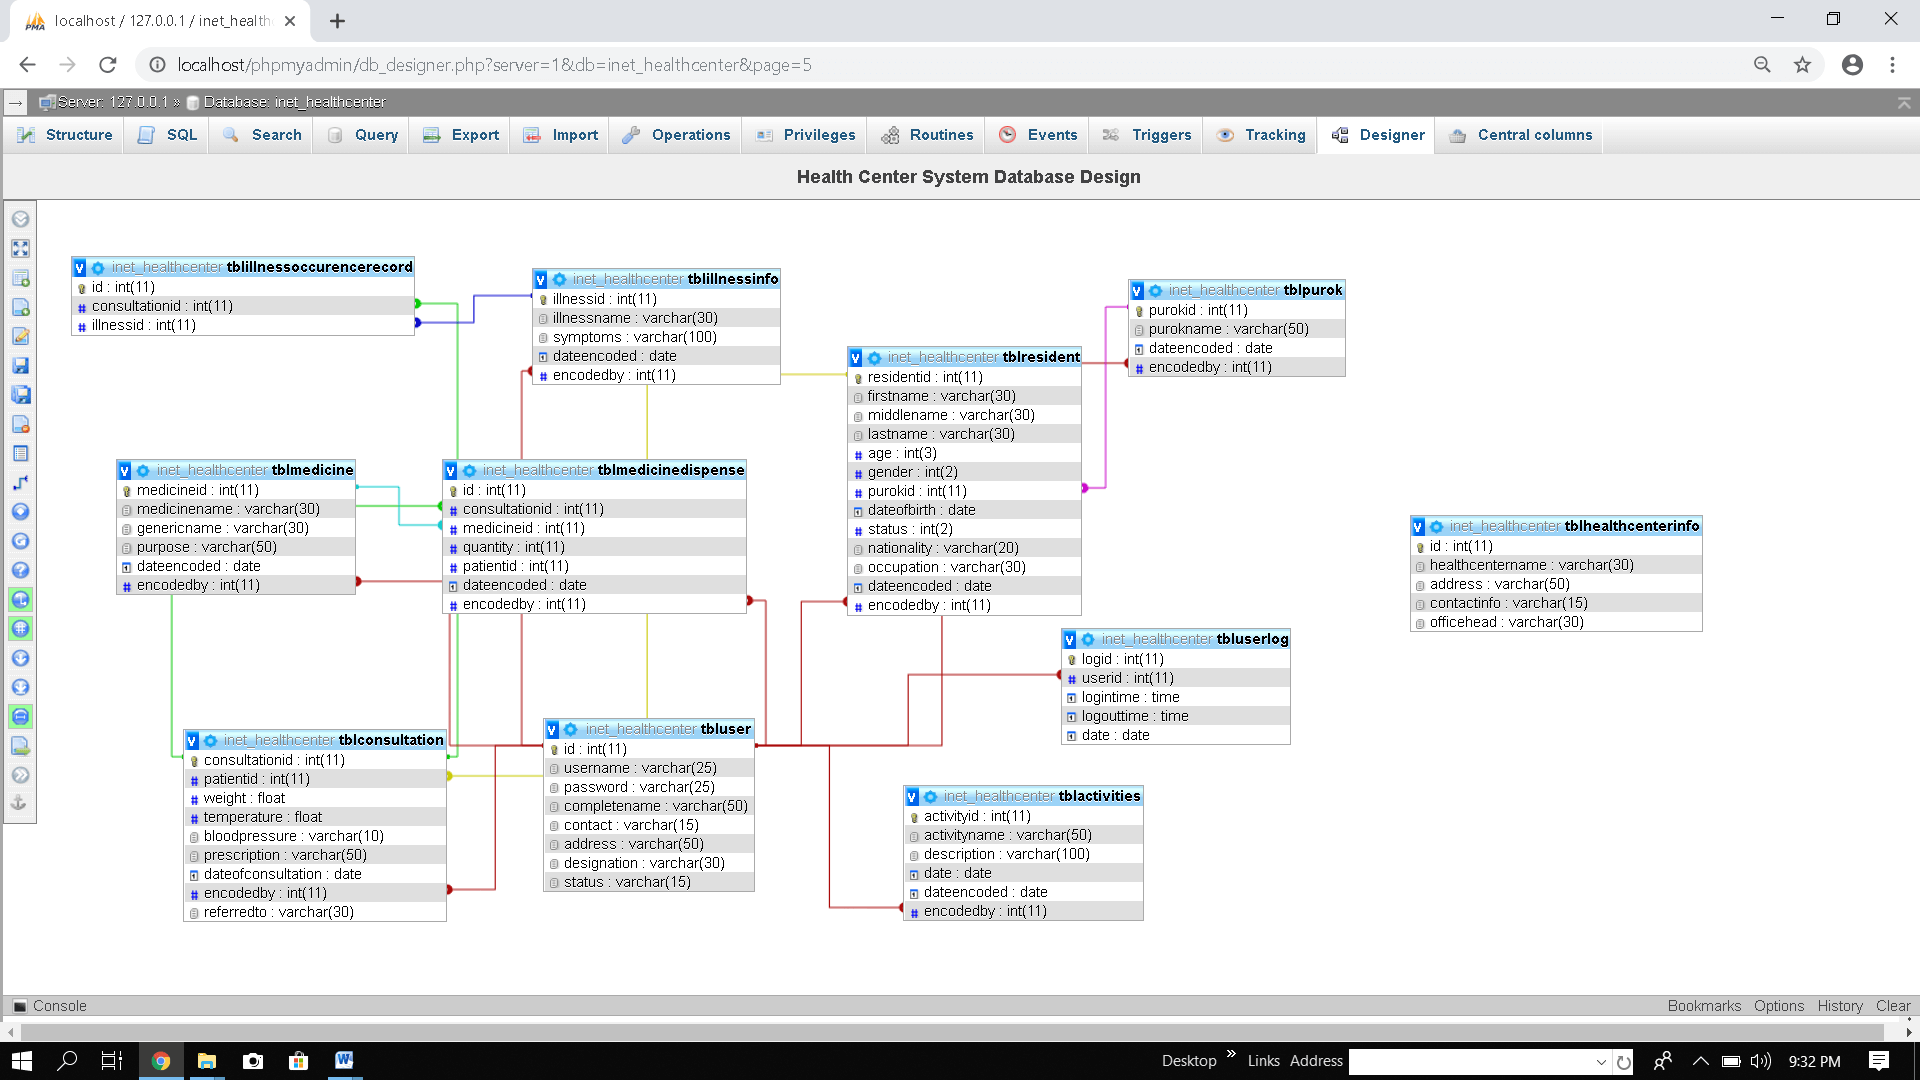 Health Center Patient Information Database Design